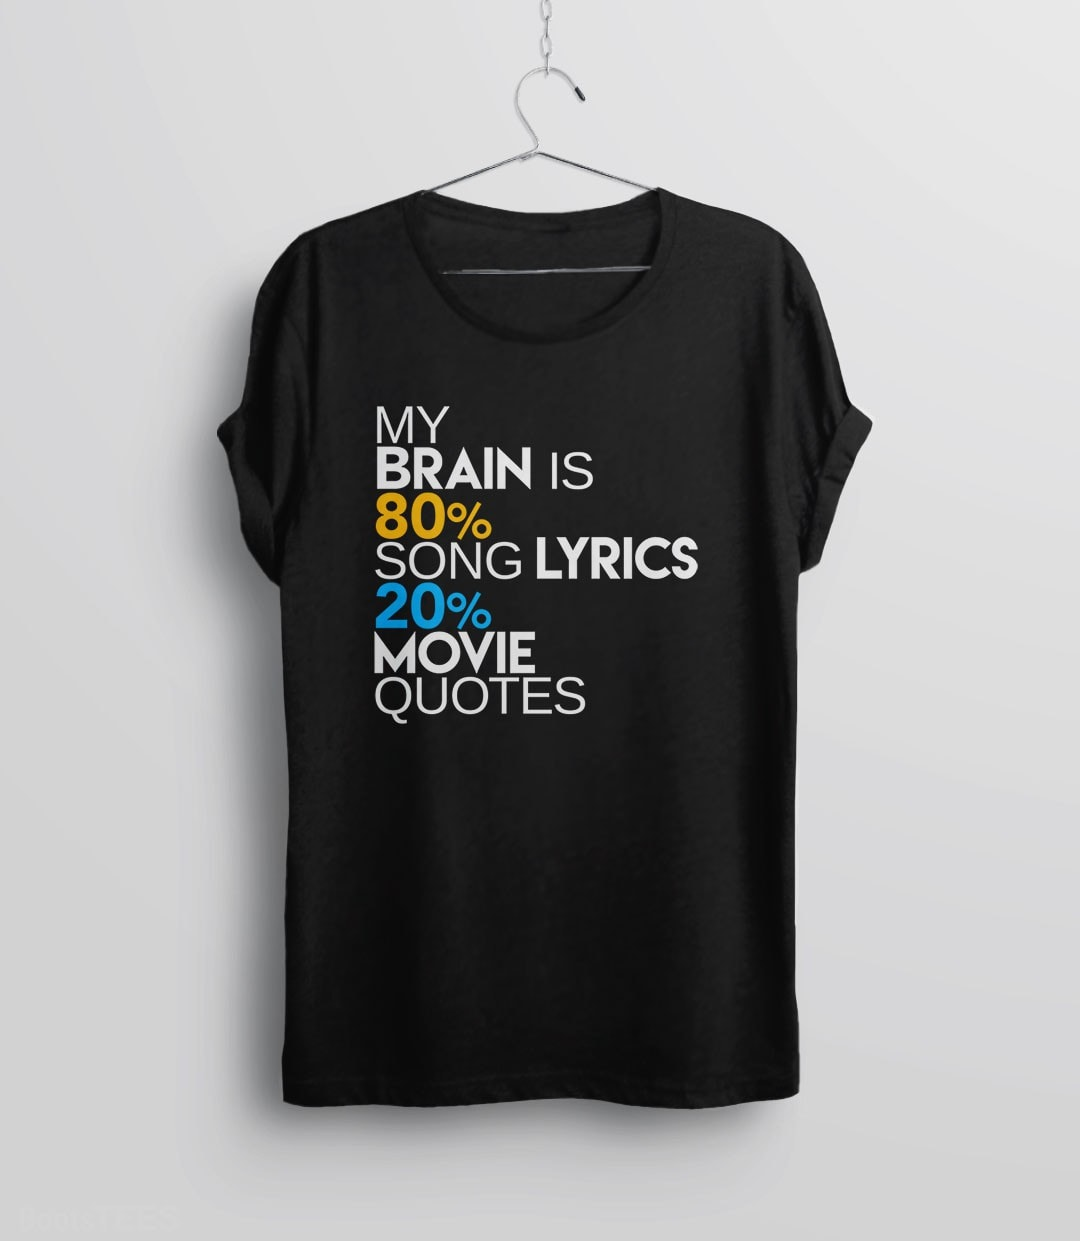 My Brain is 80% Song Lyrics, 20% Movie Quotes - unisex t-shirt